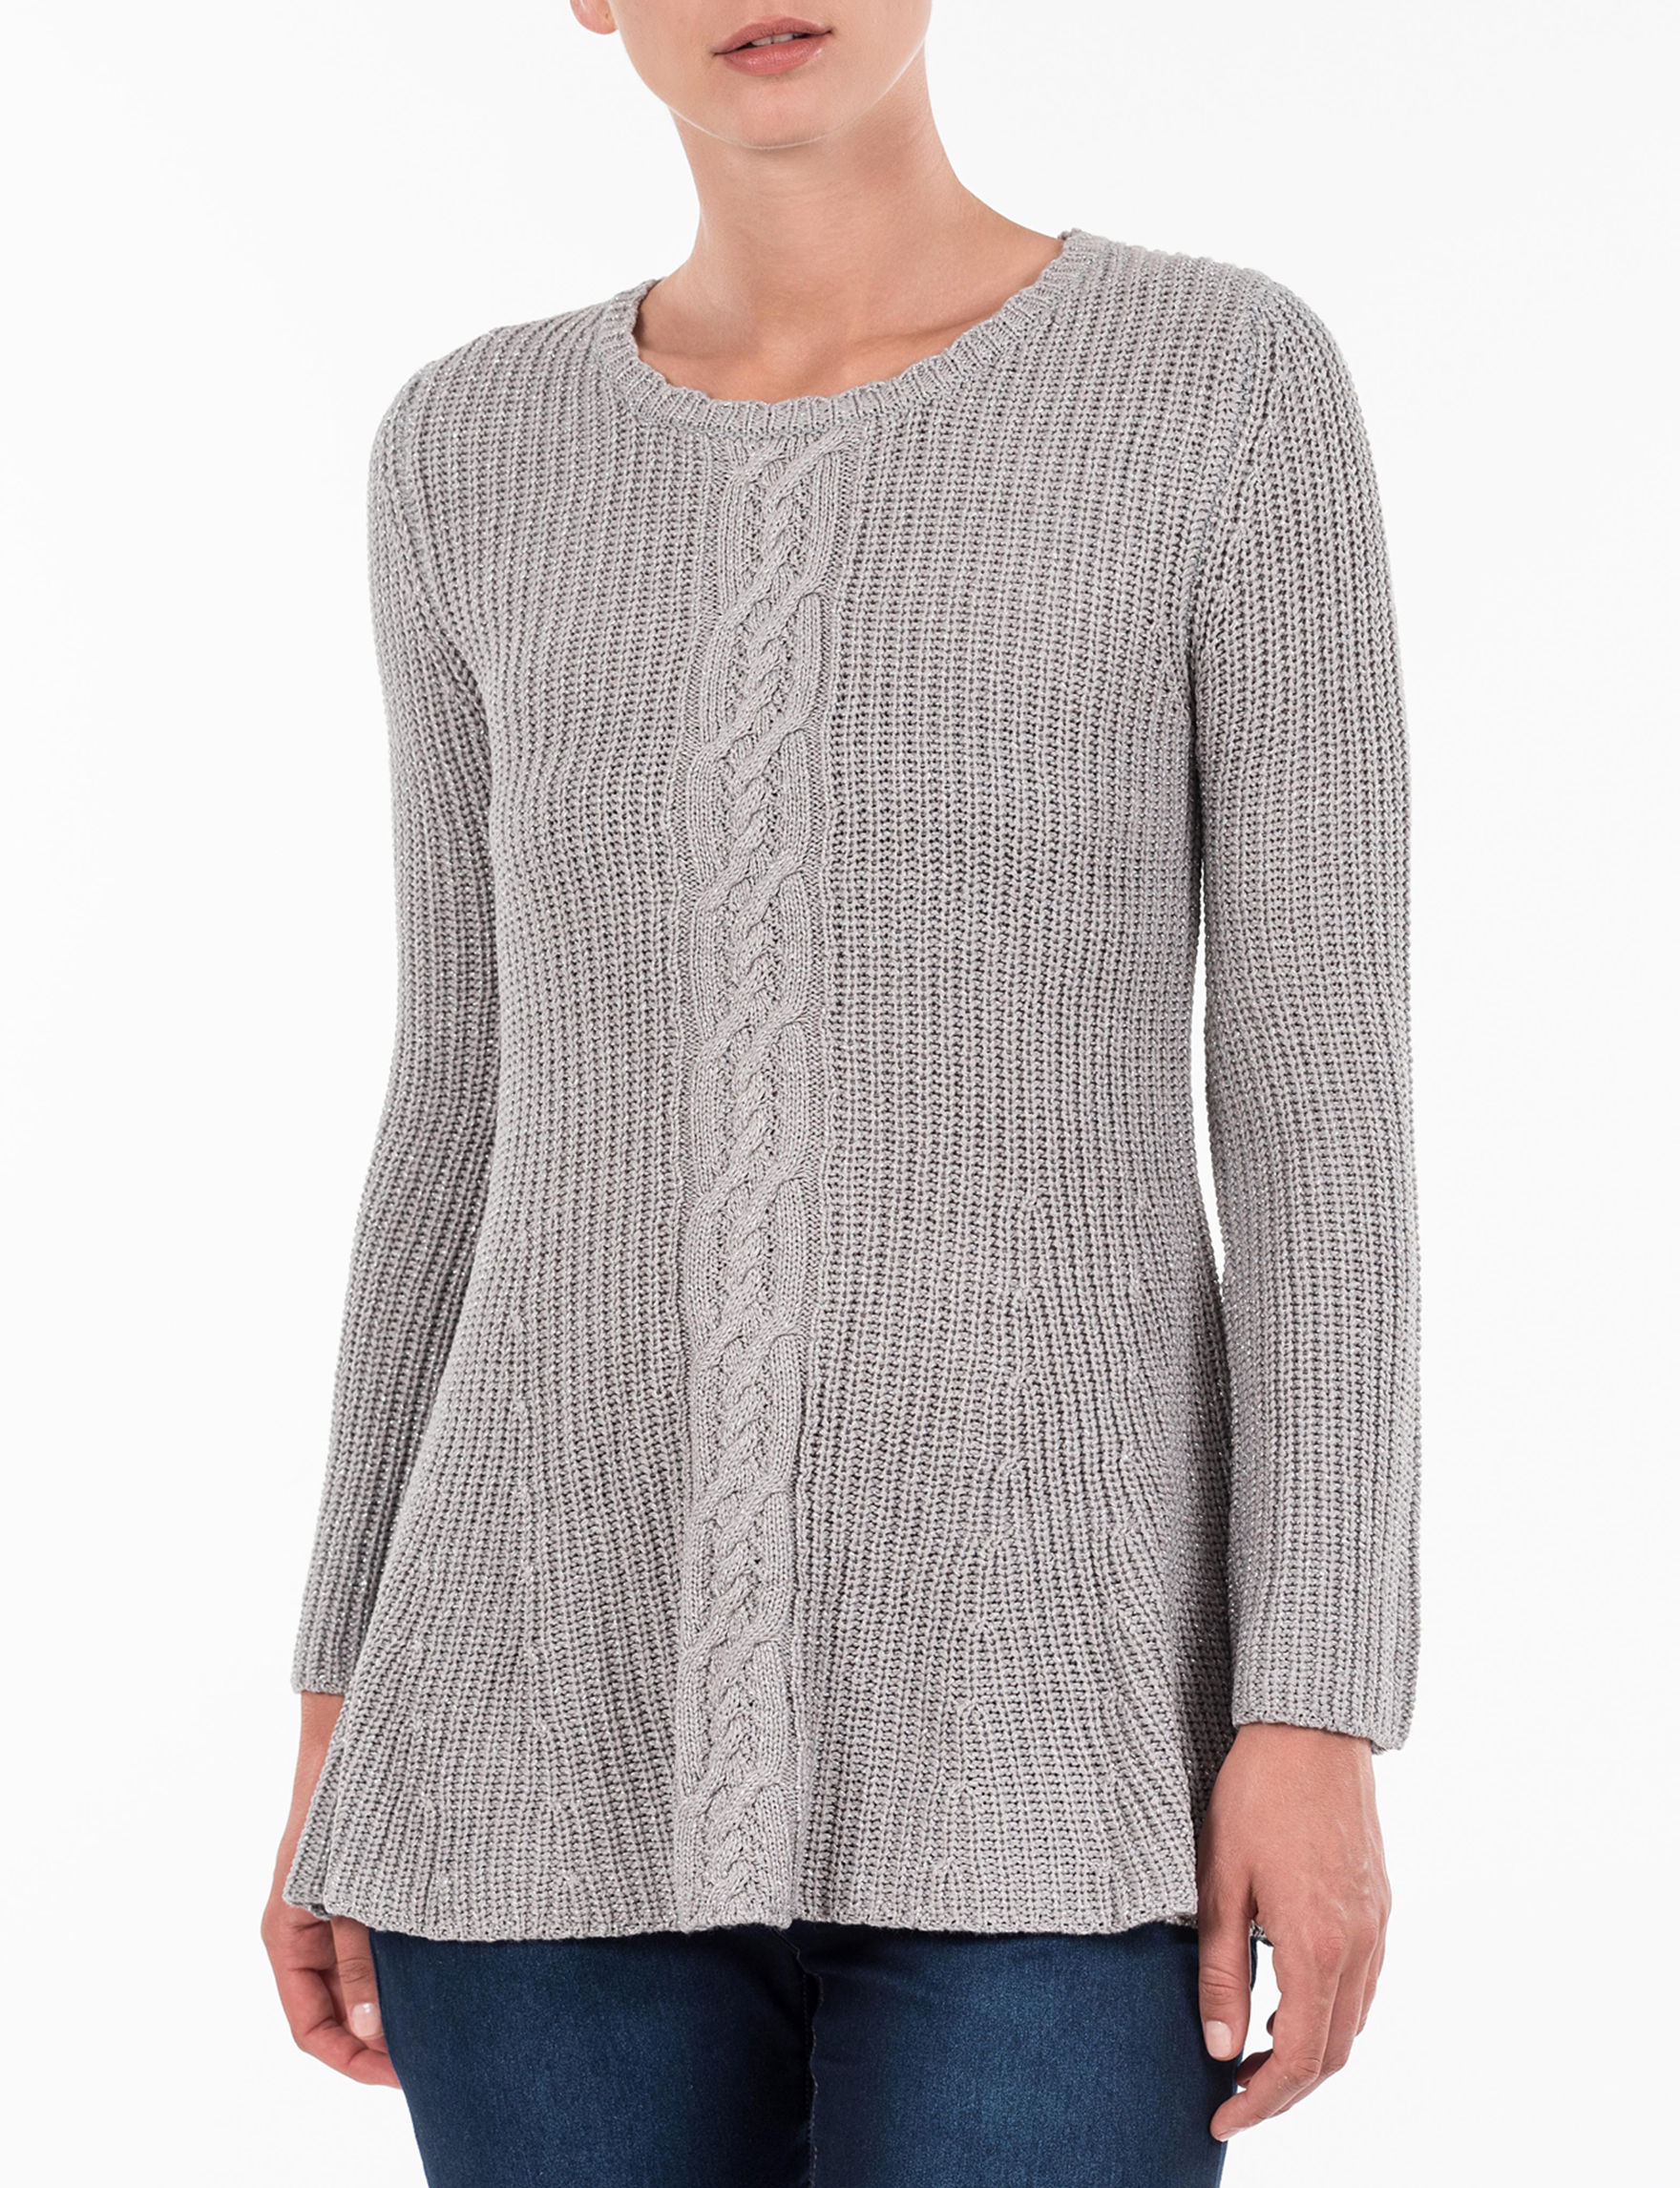 Skyes The Limit Heather Grey Pull-overs